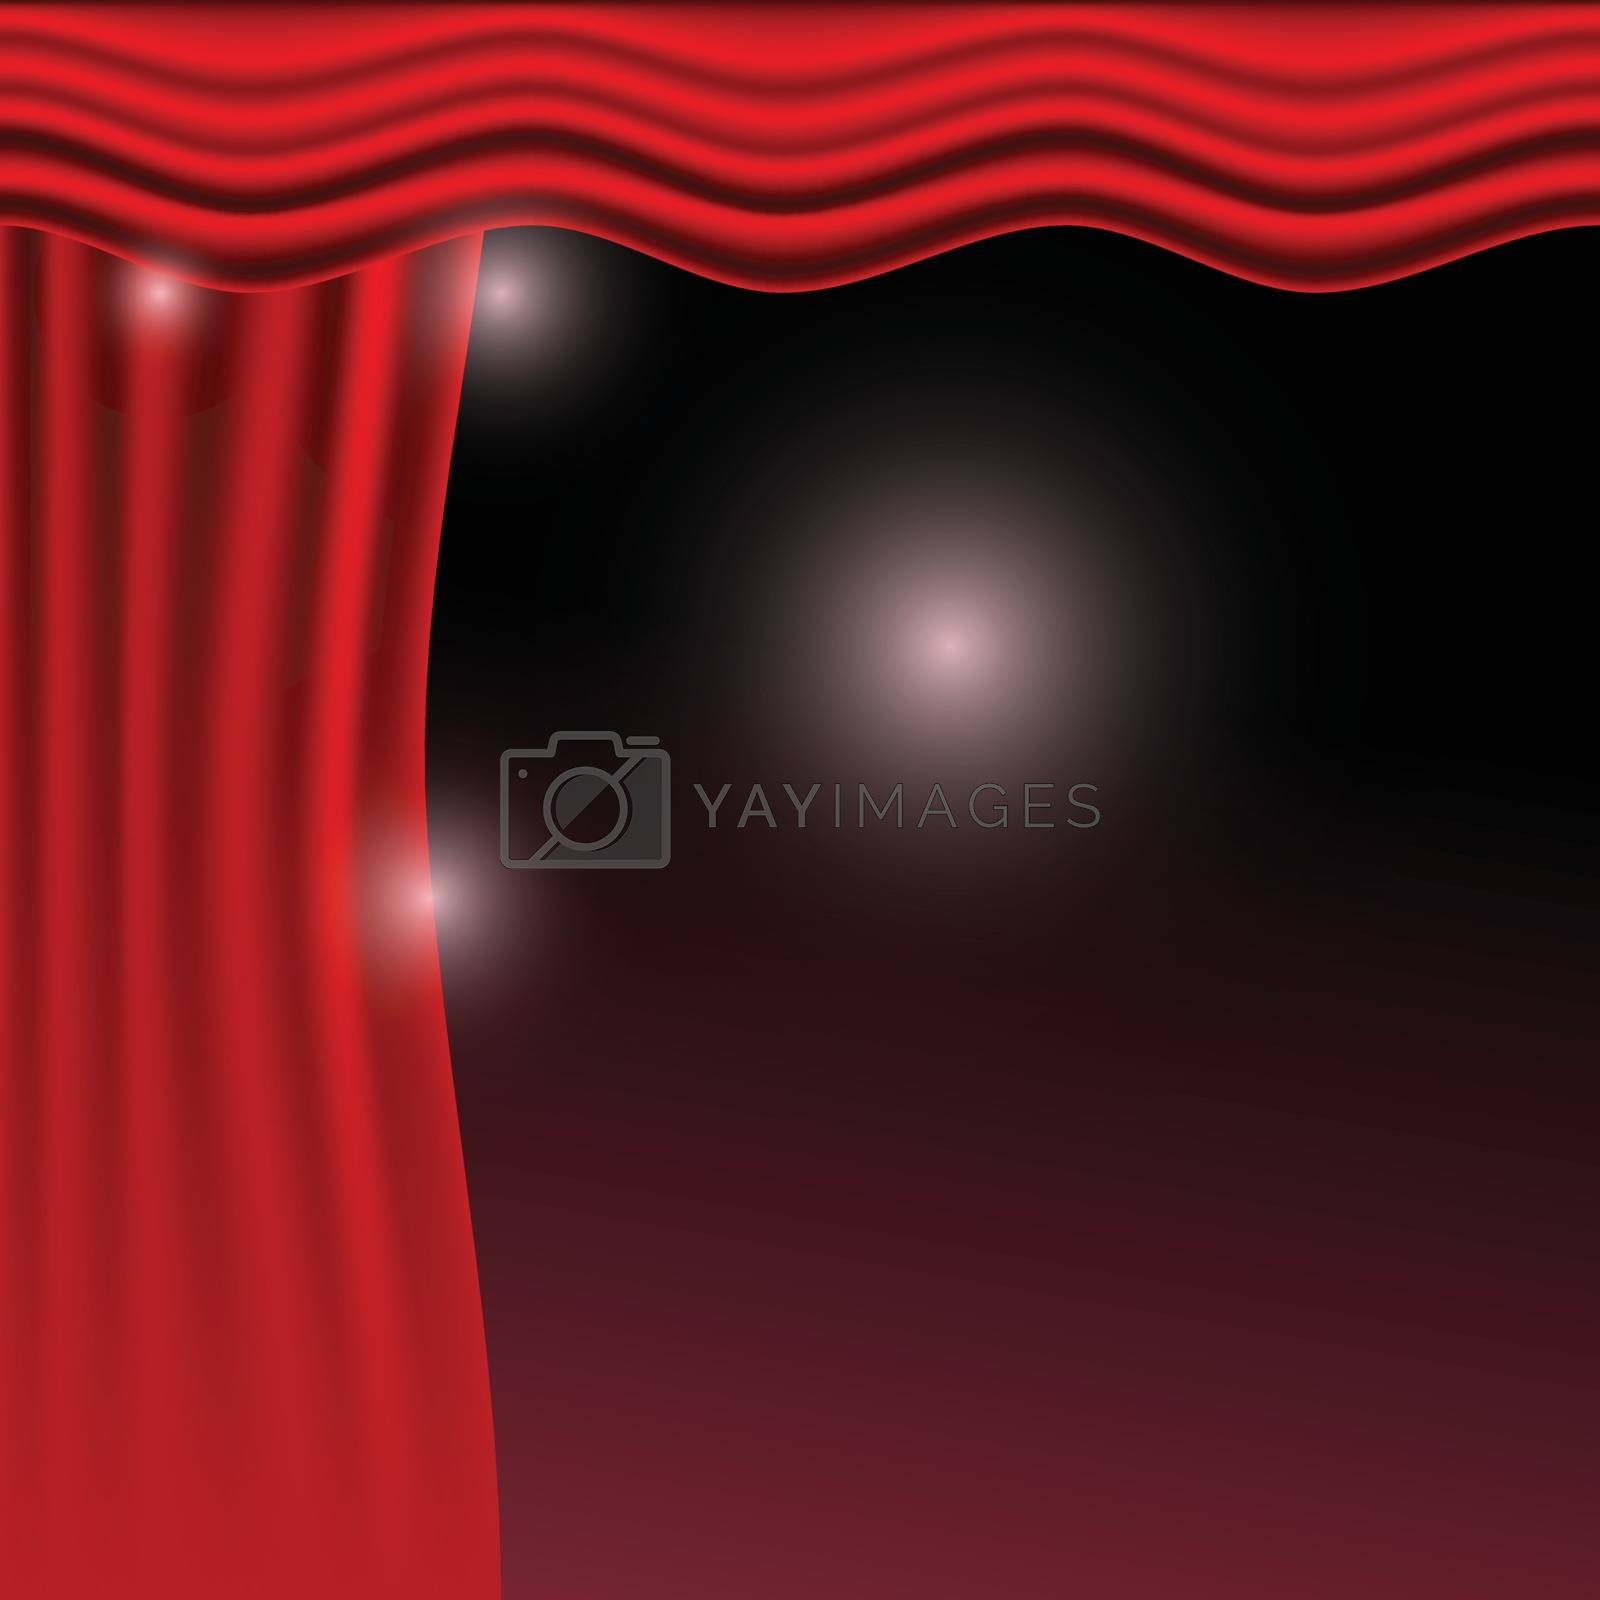 Vector illustration. Red curtains. Scenes on dark background by victosha